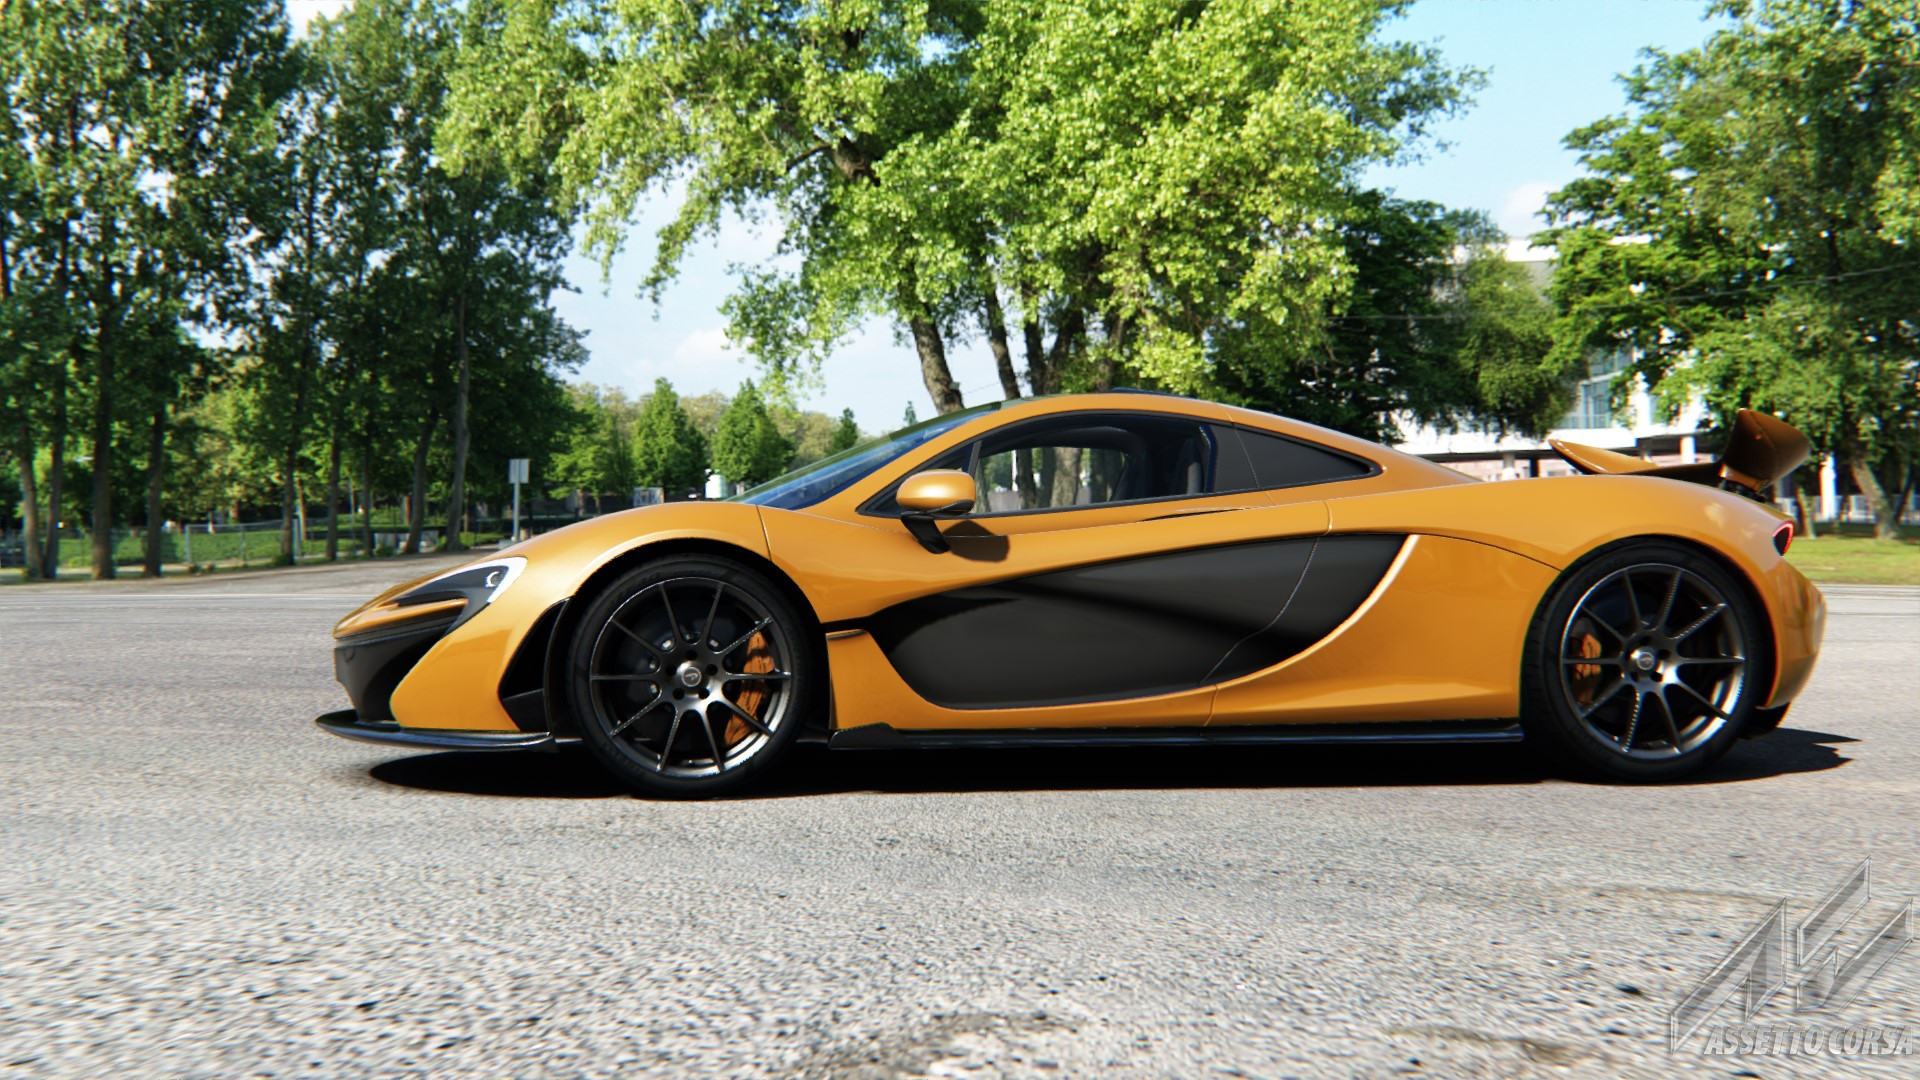 Showroom_ks_mclaren_p1_30-8-2017-17-33-6.jpg